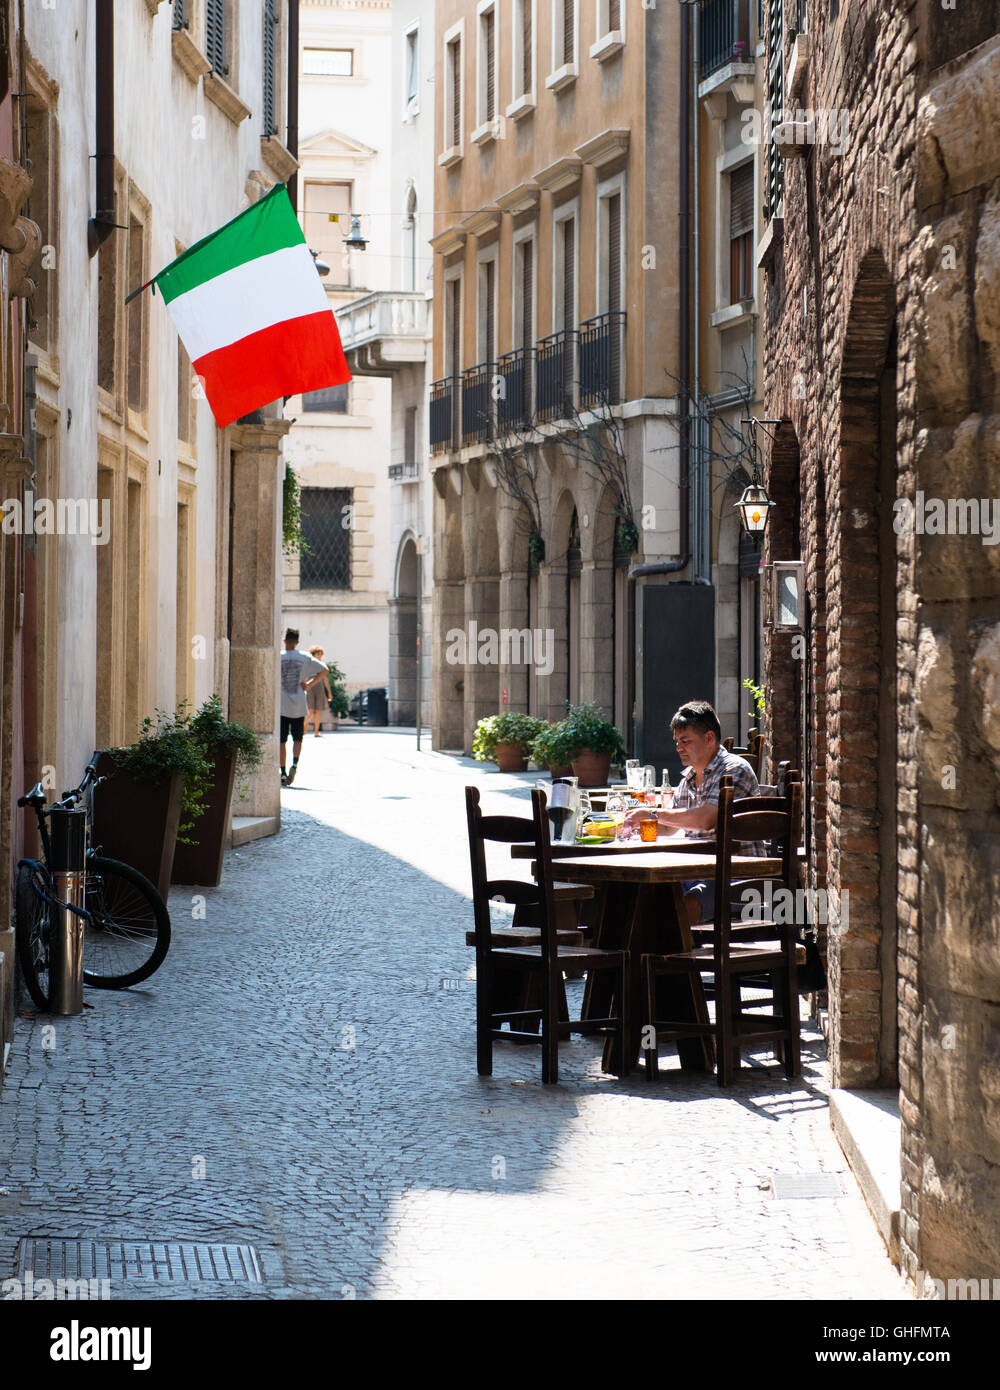 Lunch in Verona - Stock Image